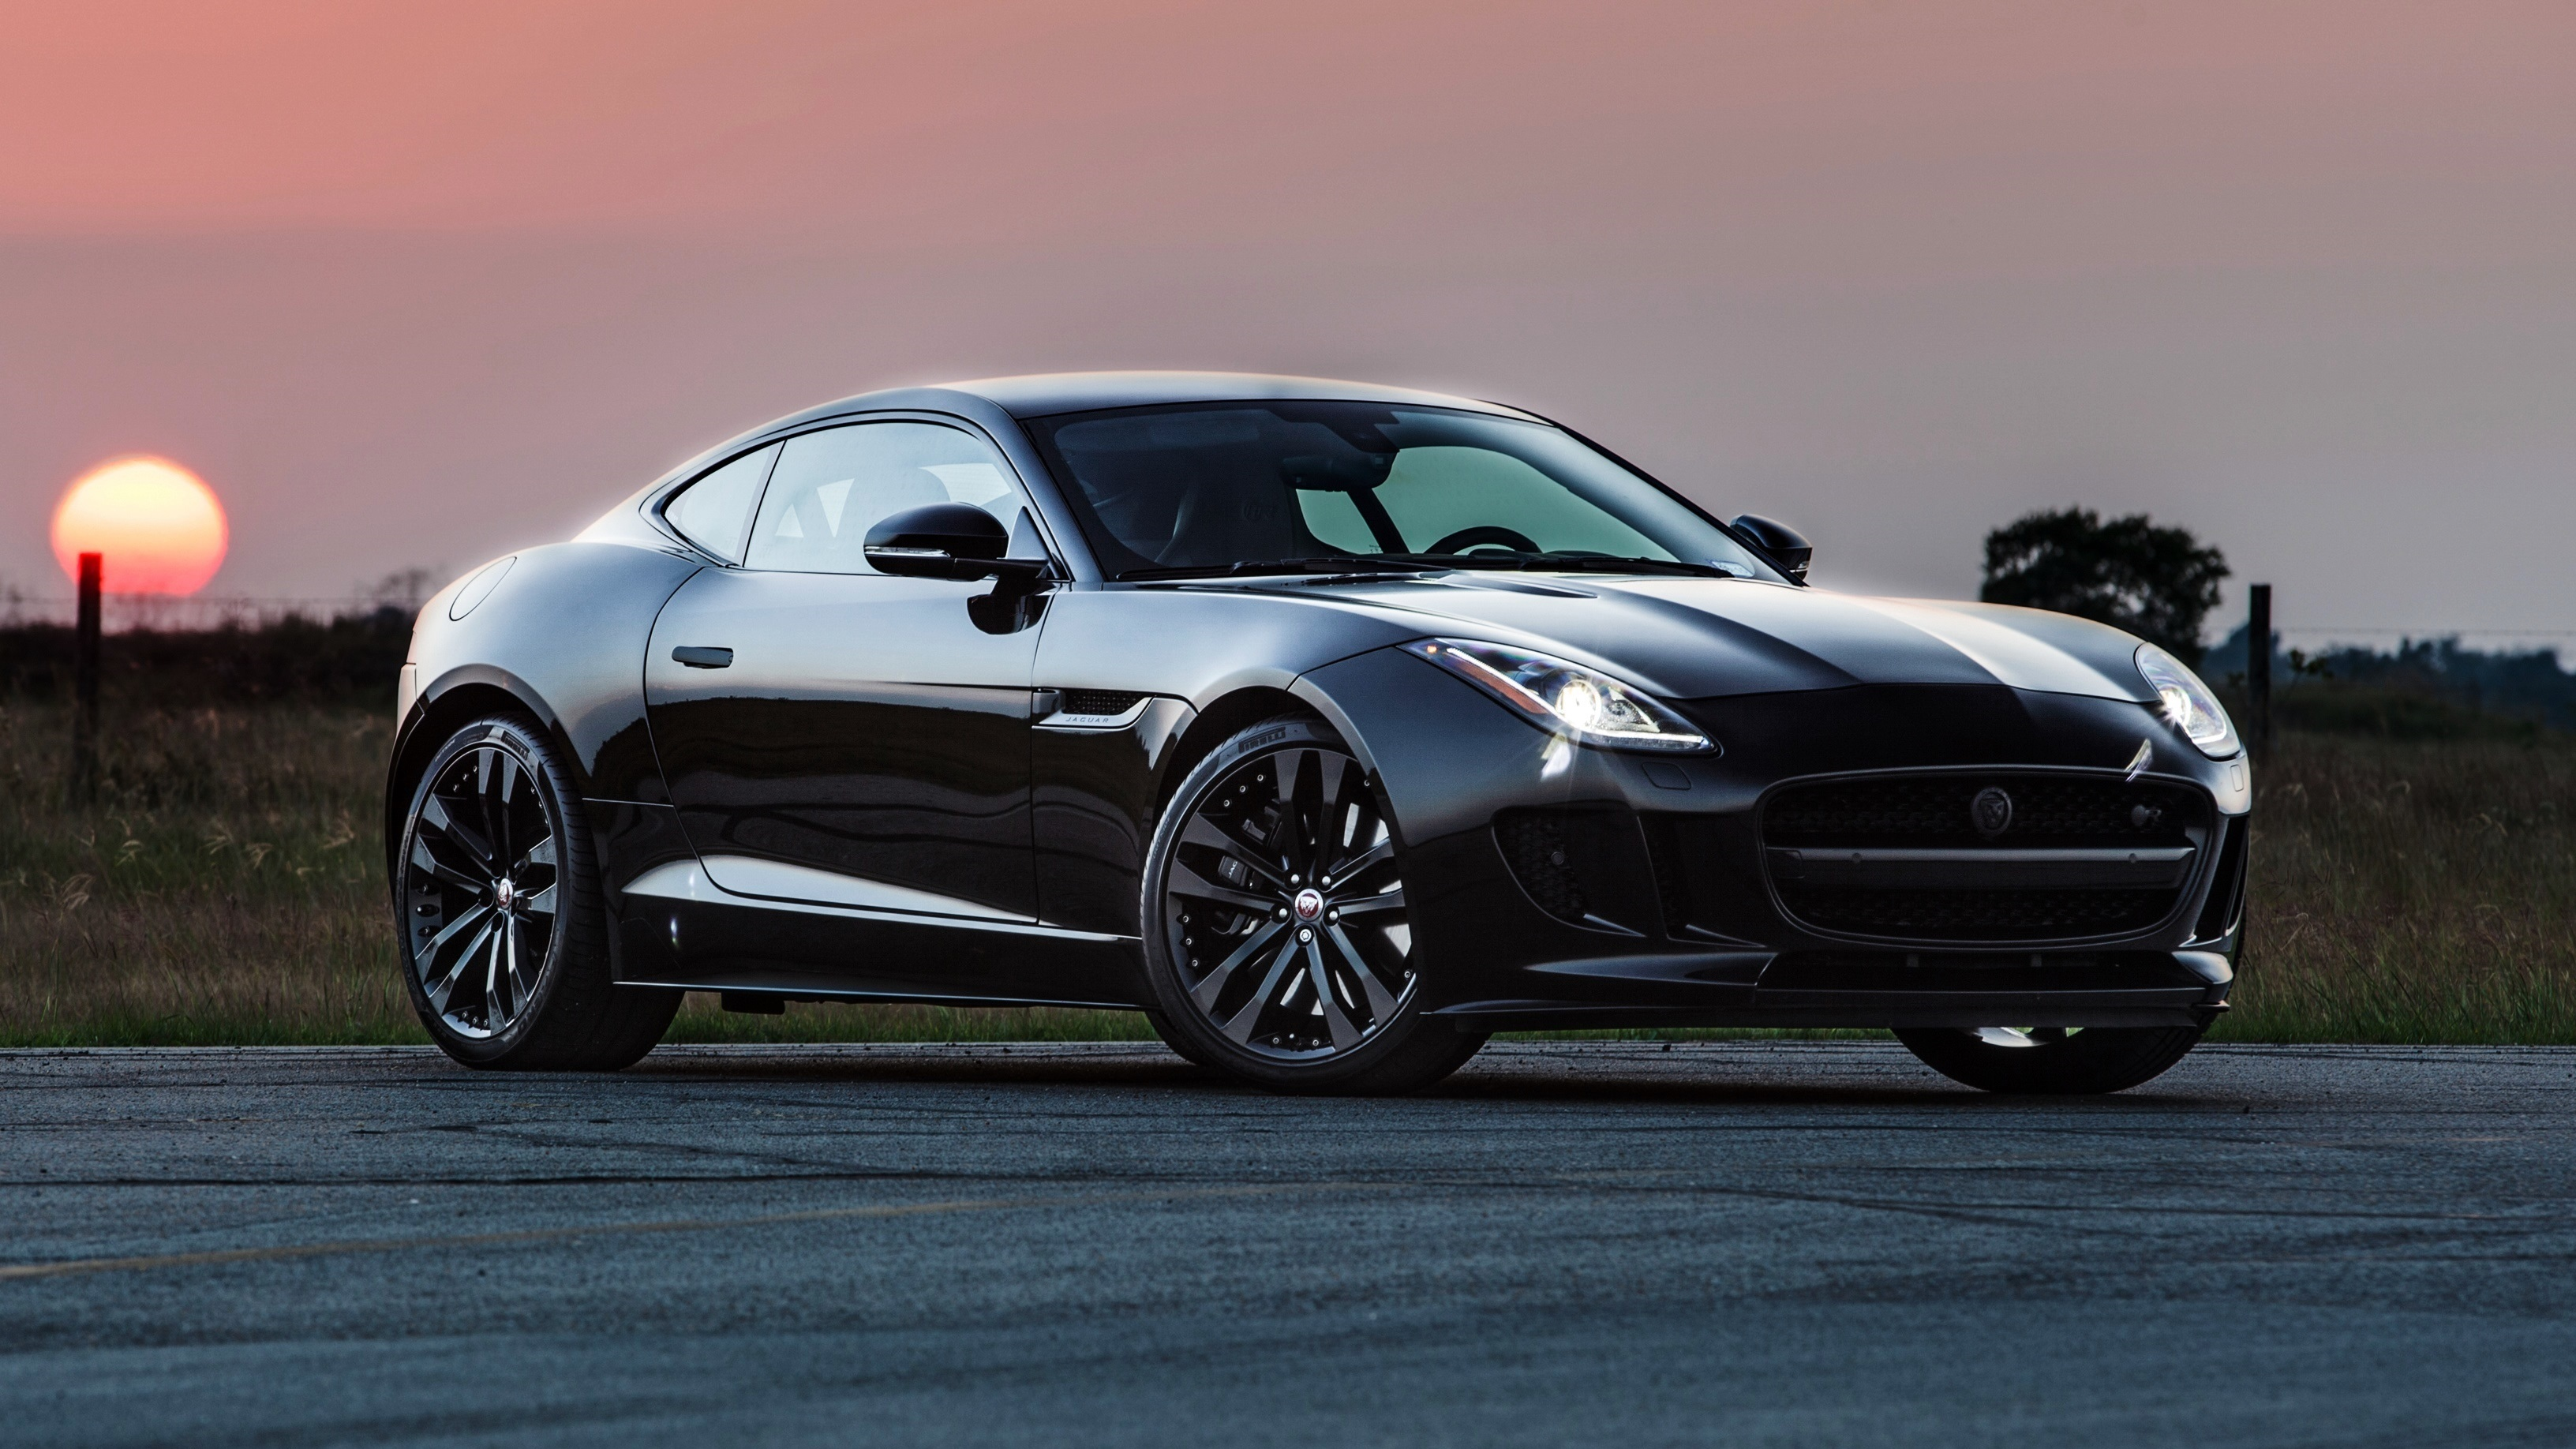 102781 download wallpaper Jaguar, Cars, Side View, Hennessey, F-Type R screensavers and pictures for free